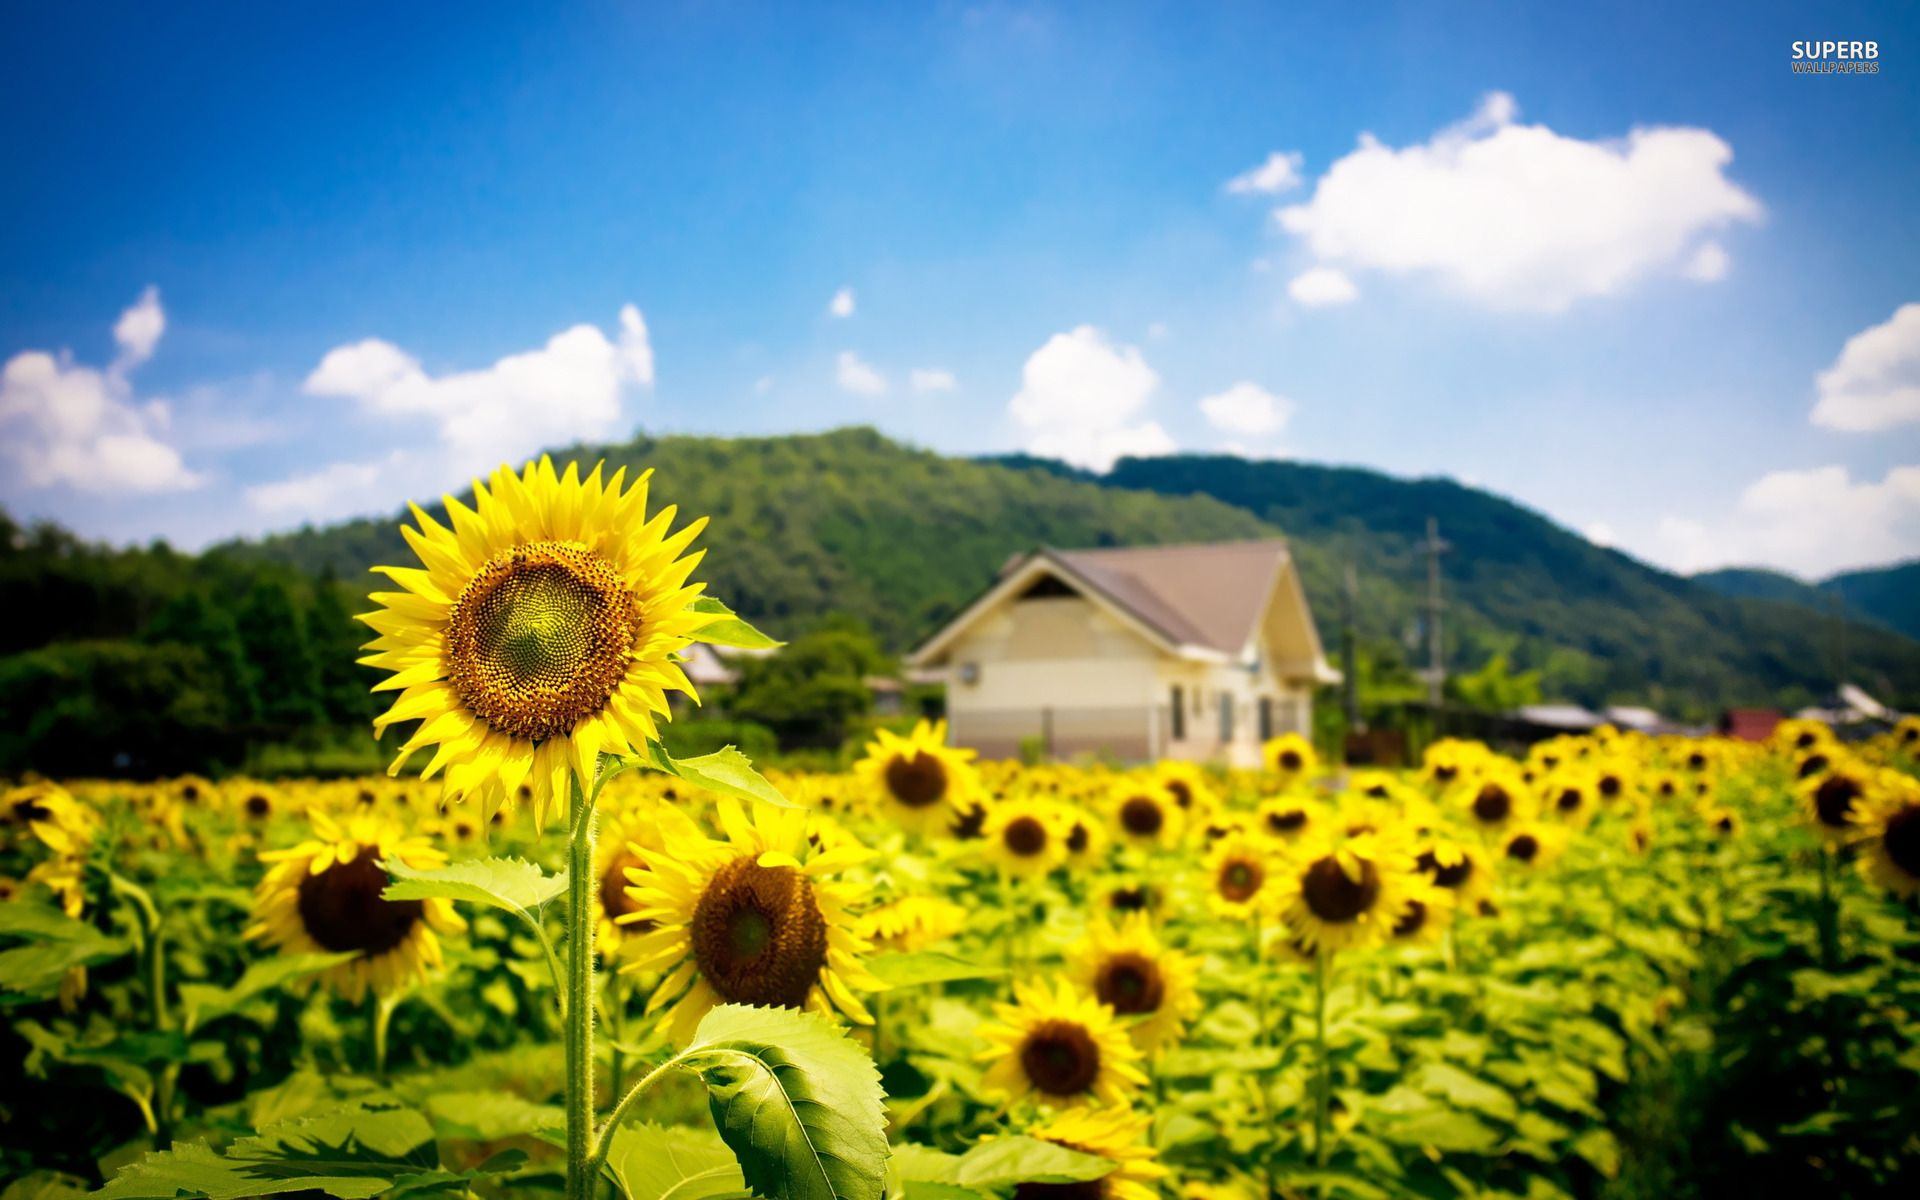 sunflower field photography hd images 3 hd wallpapers